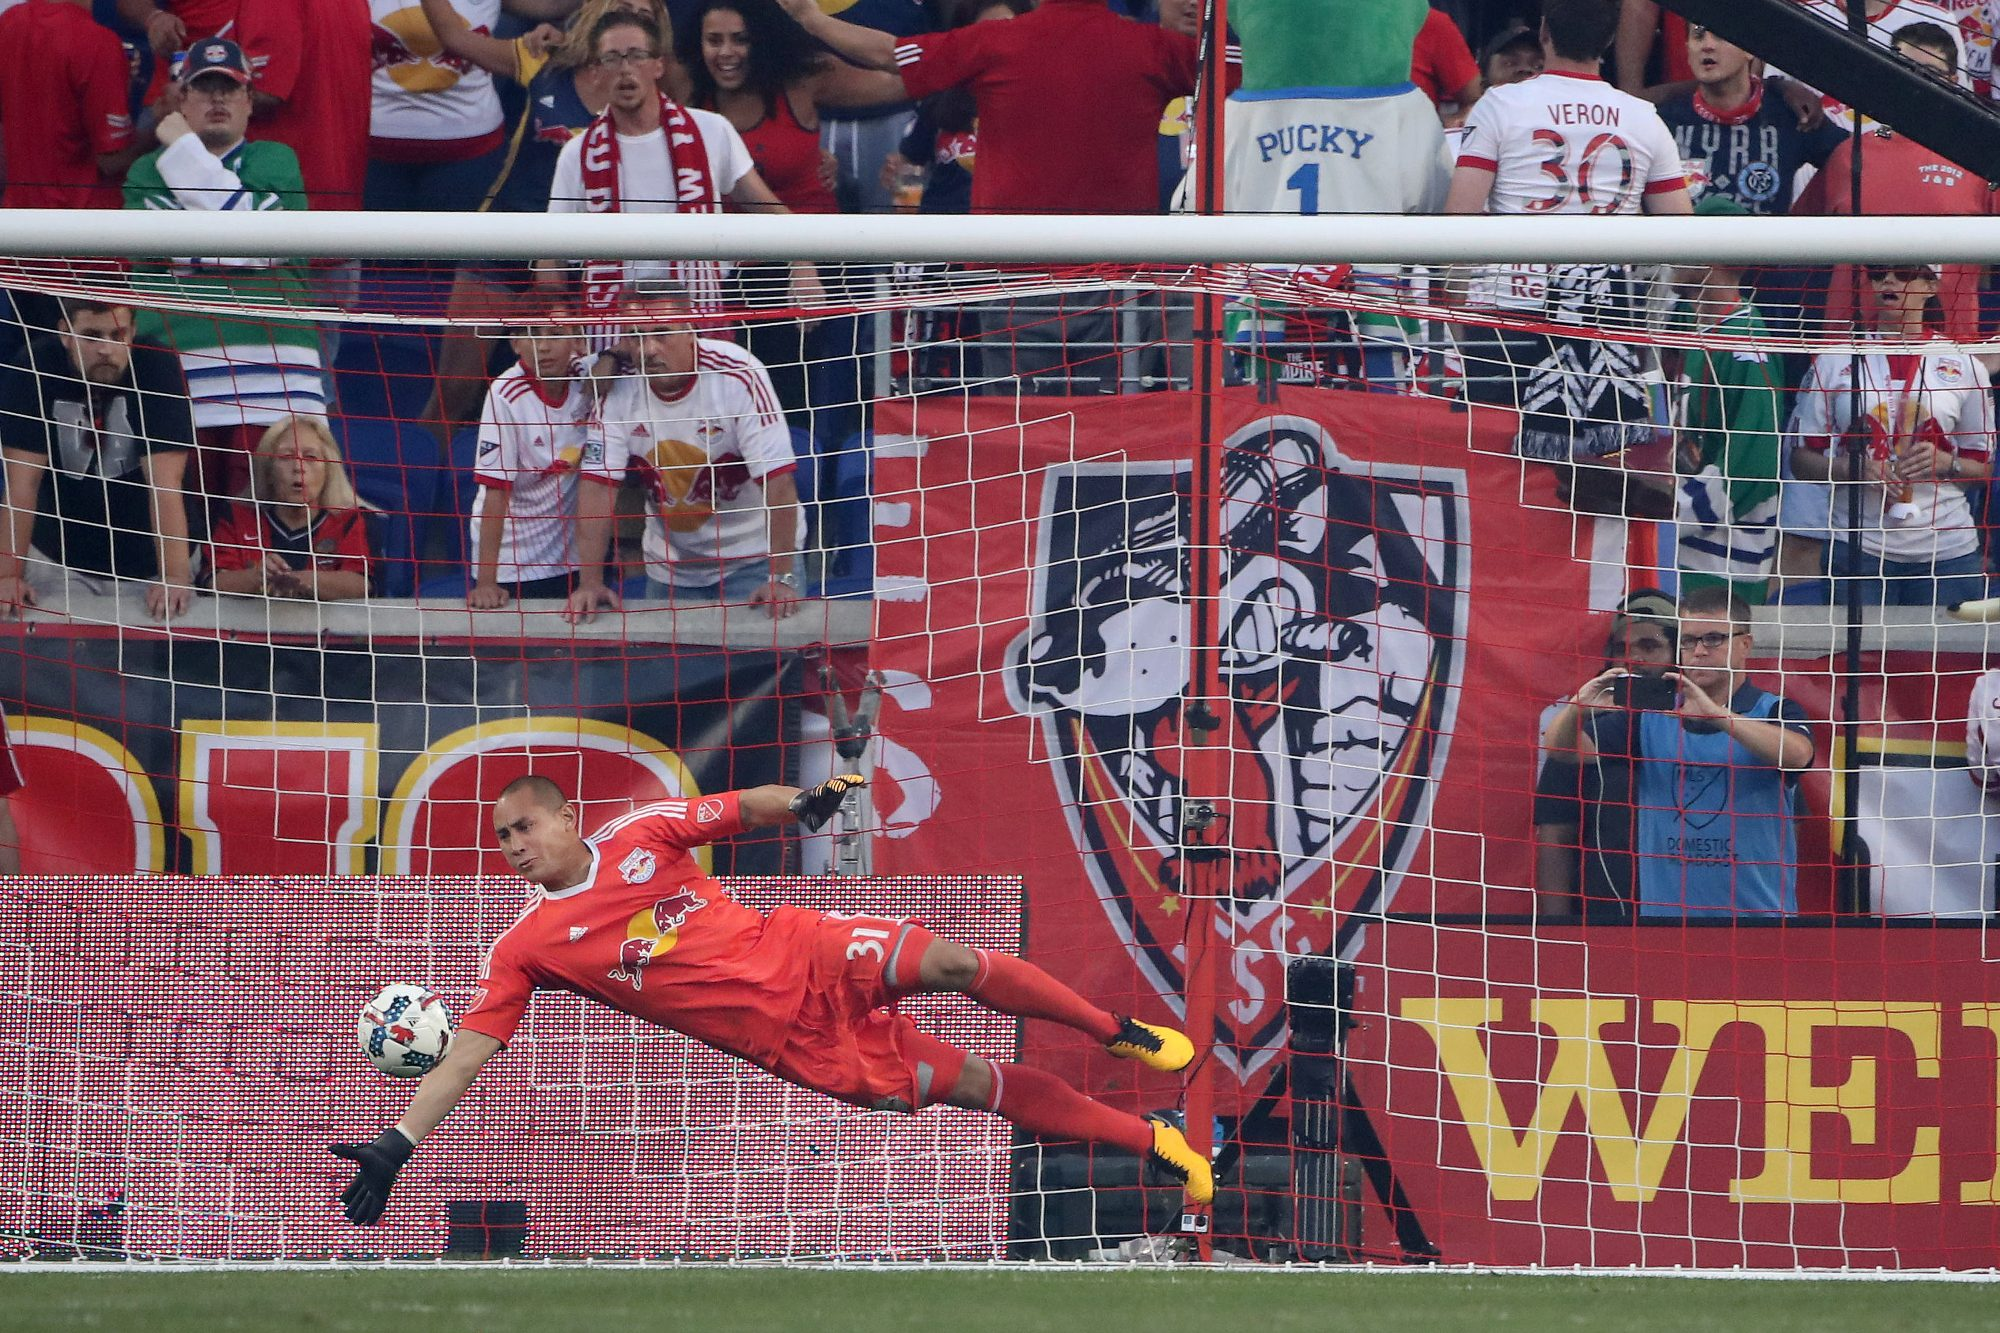 The New York Red Bulls Are Ready For a Busy Week, Trophy Opportunity